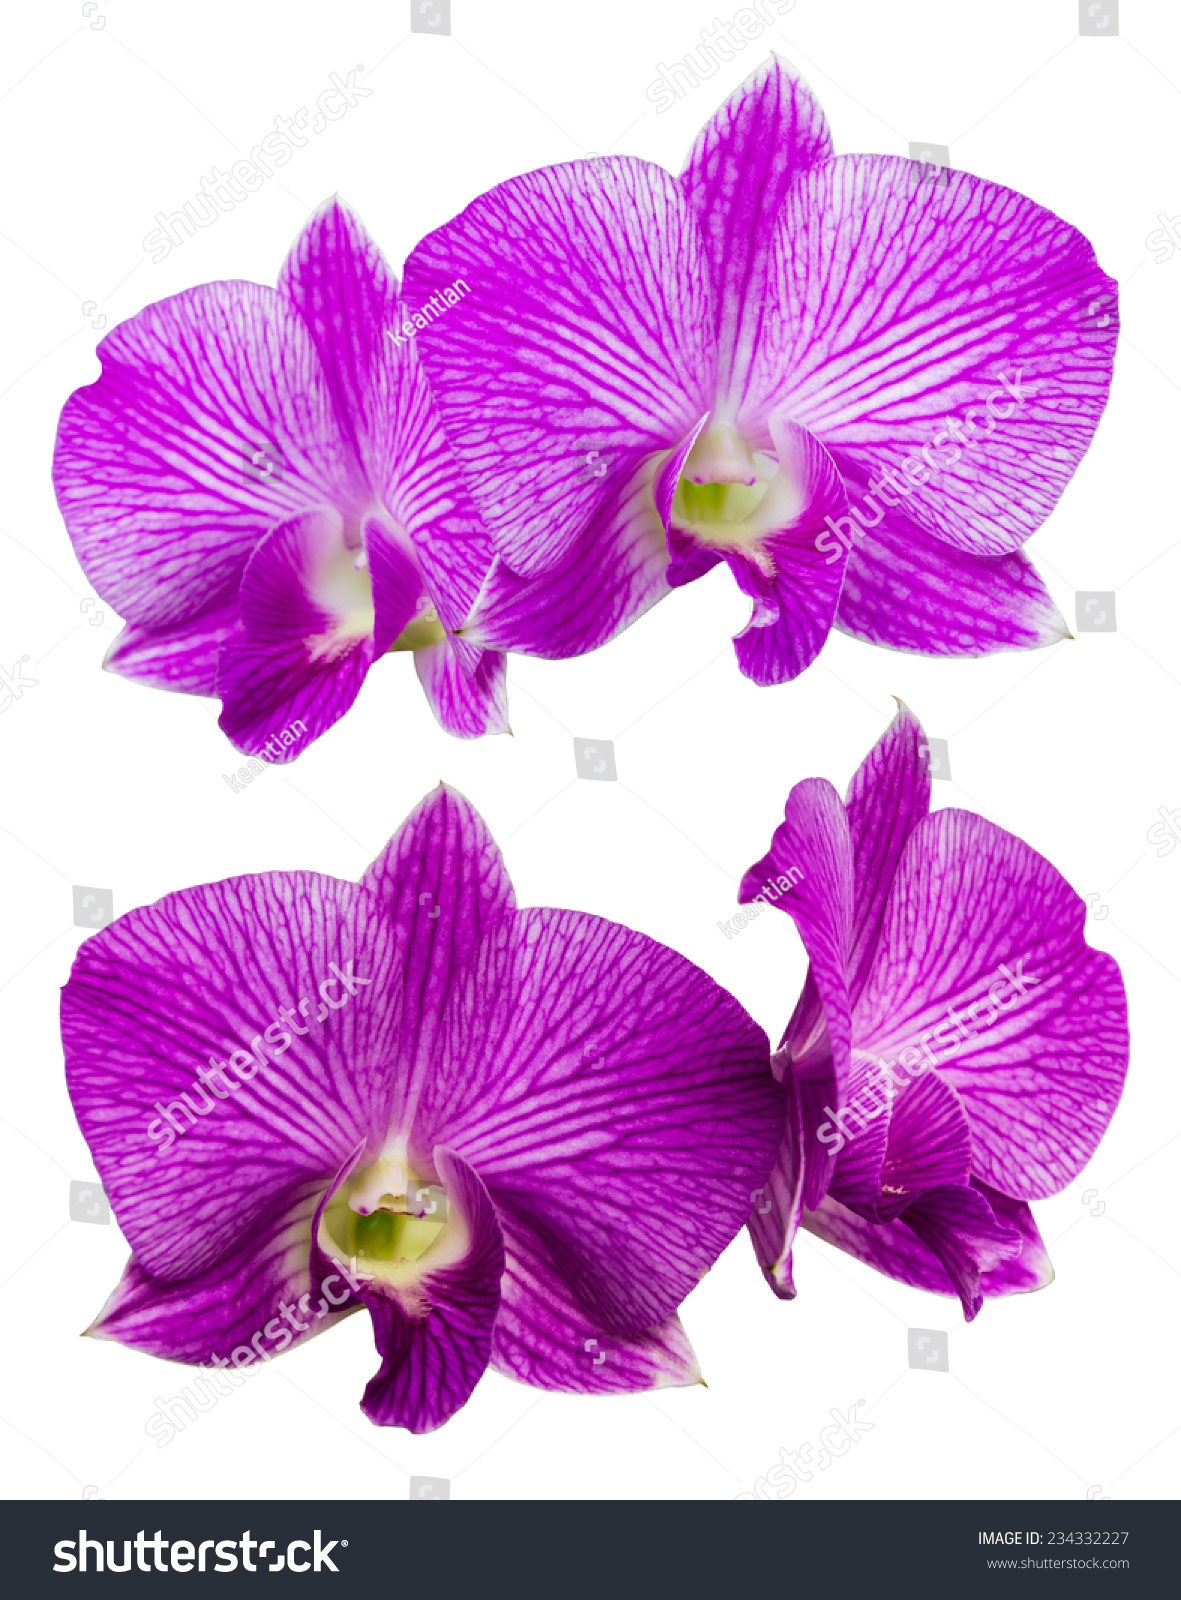 Isolates purple orchids two views of four different beautiful id 234332227 izmirmasajfo